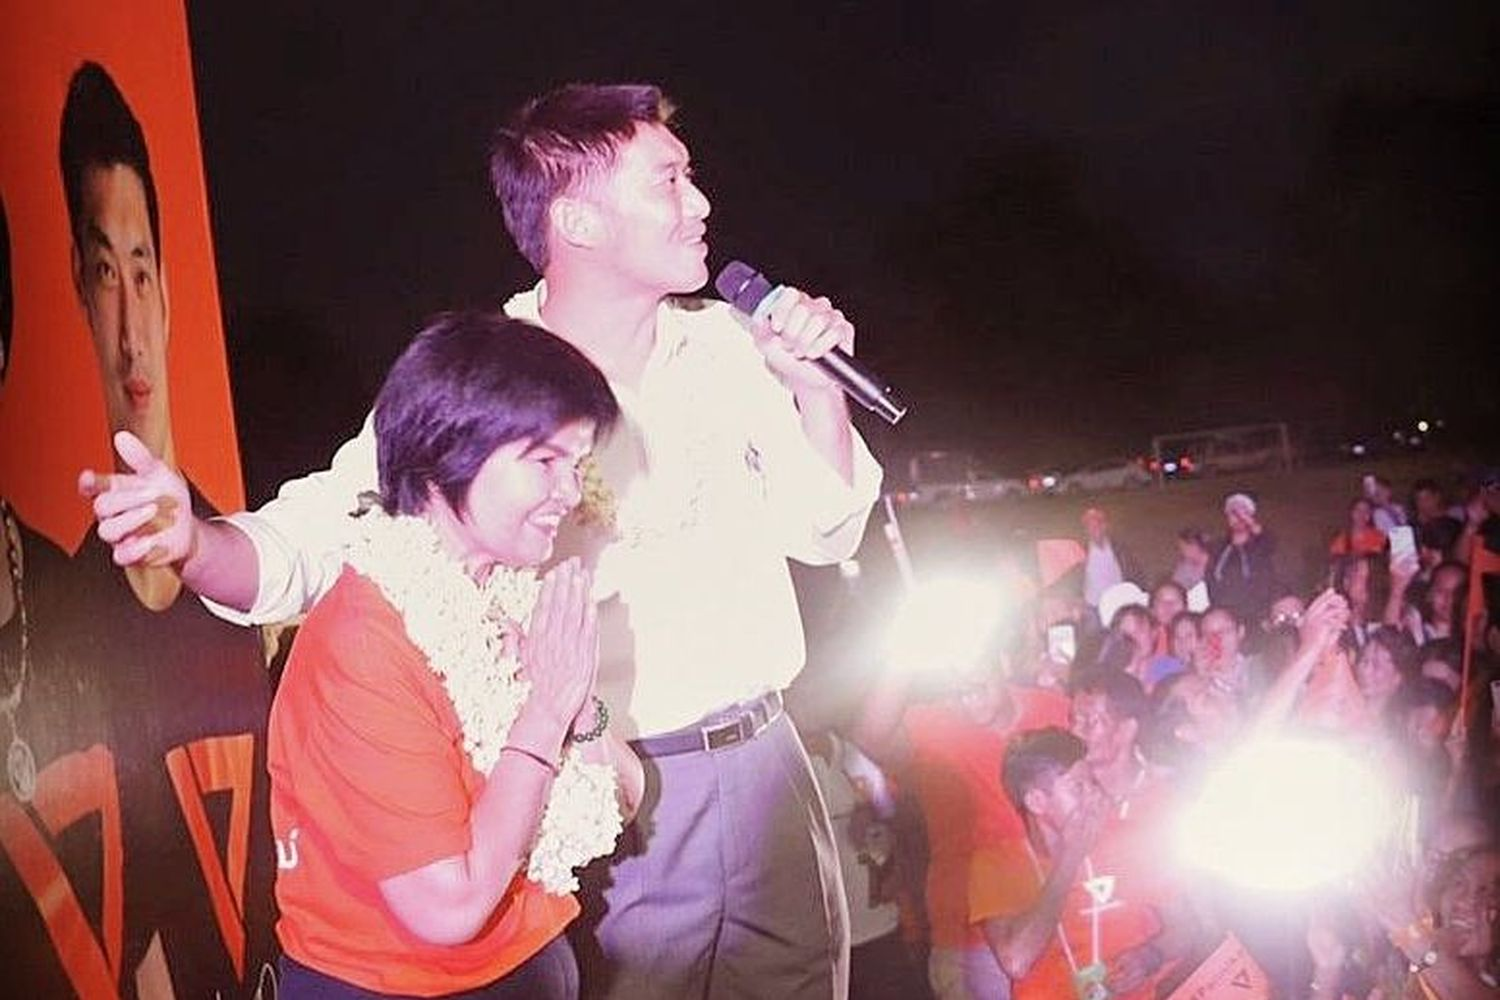 Future Forward Party leader Thanathorn Juangroongruangkit (right) helps Srinuan Boonlue, the party's candidate for Chiang Mai's eighth constituency by-election, campaign. (Photo from Twitter@Trending Talk UK.com)